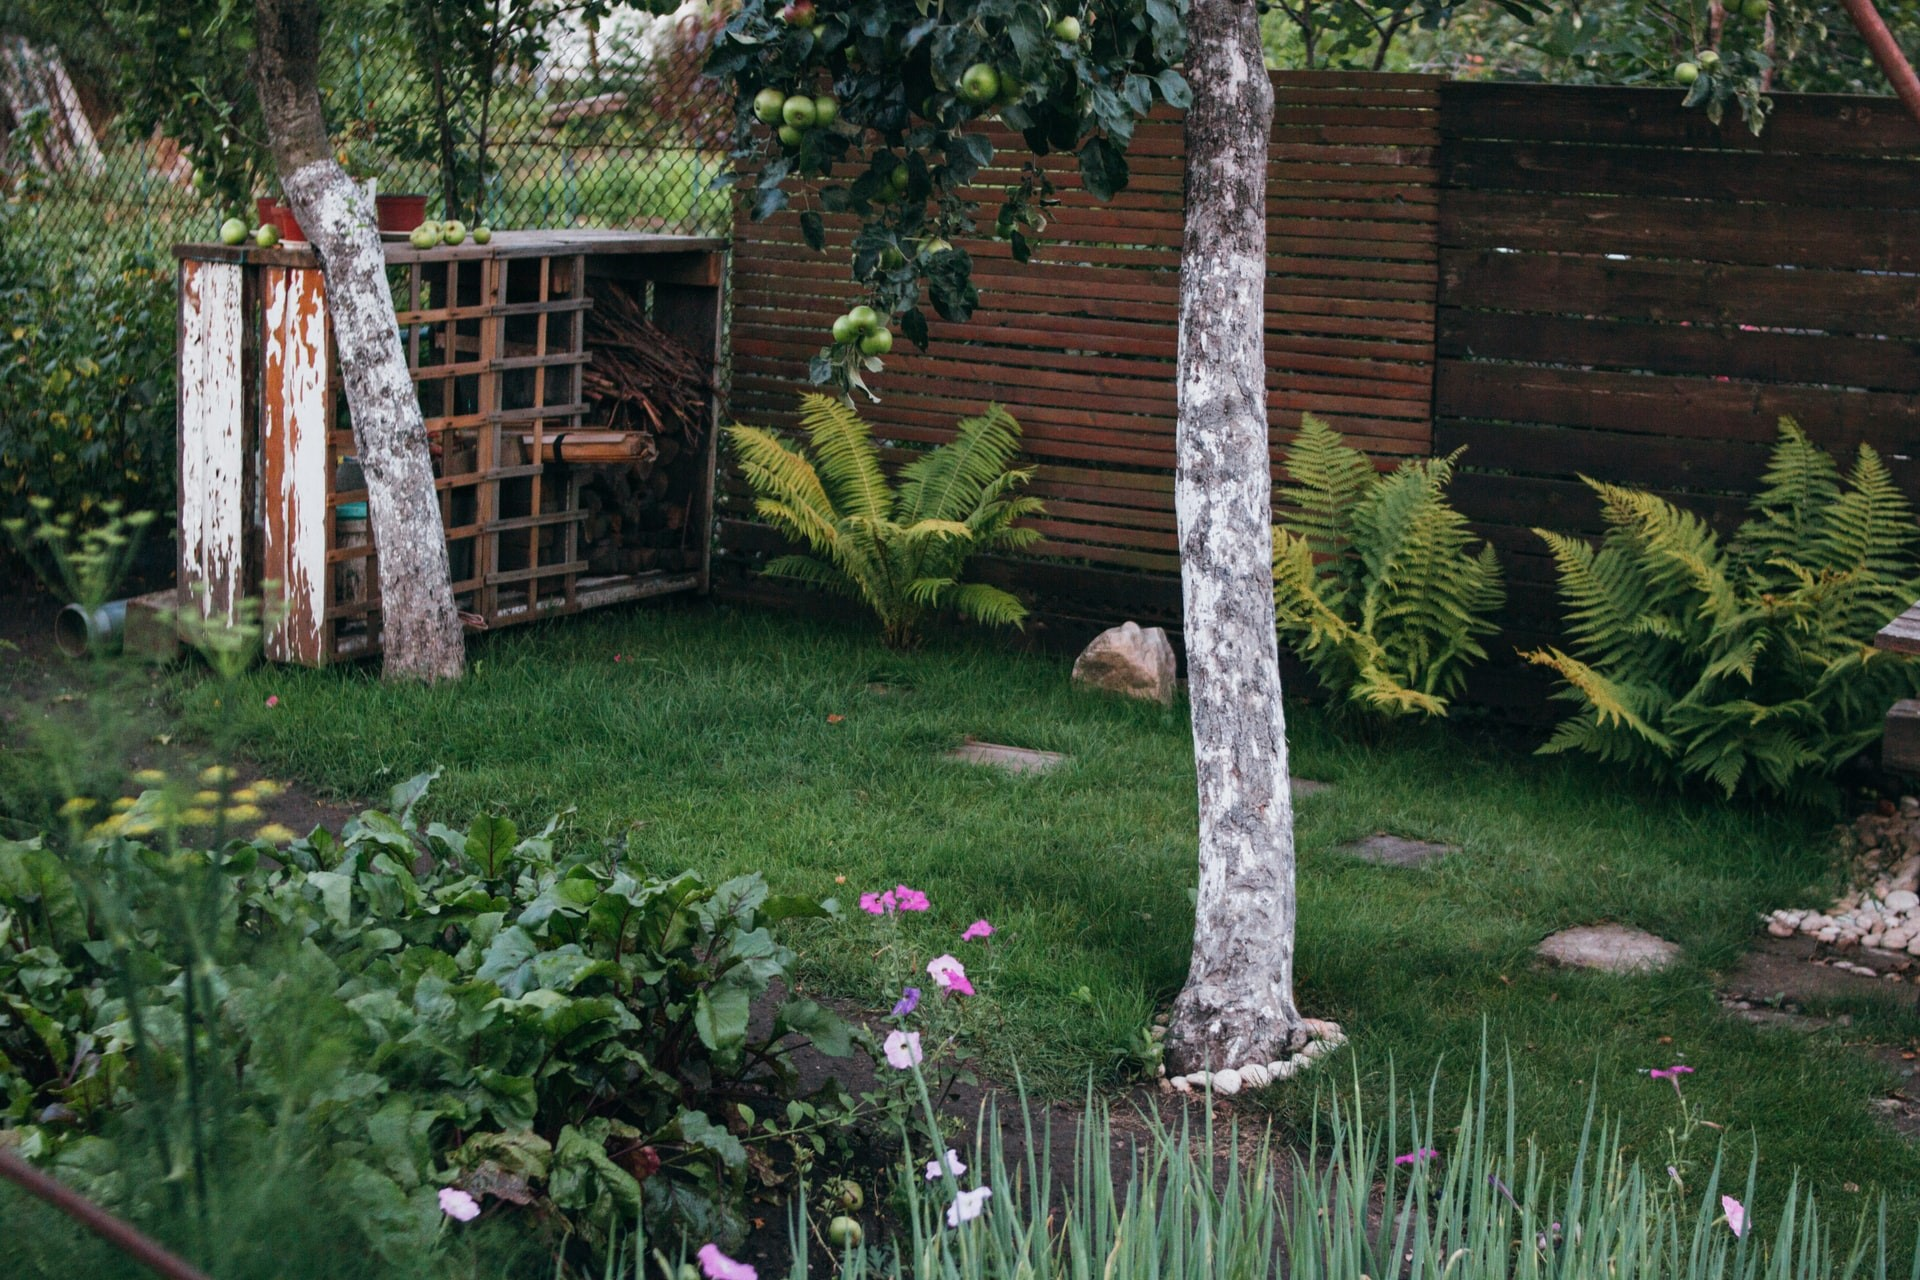 Back garden with trees and plants